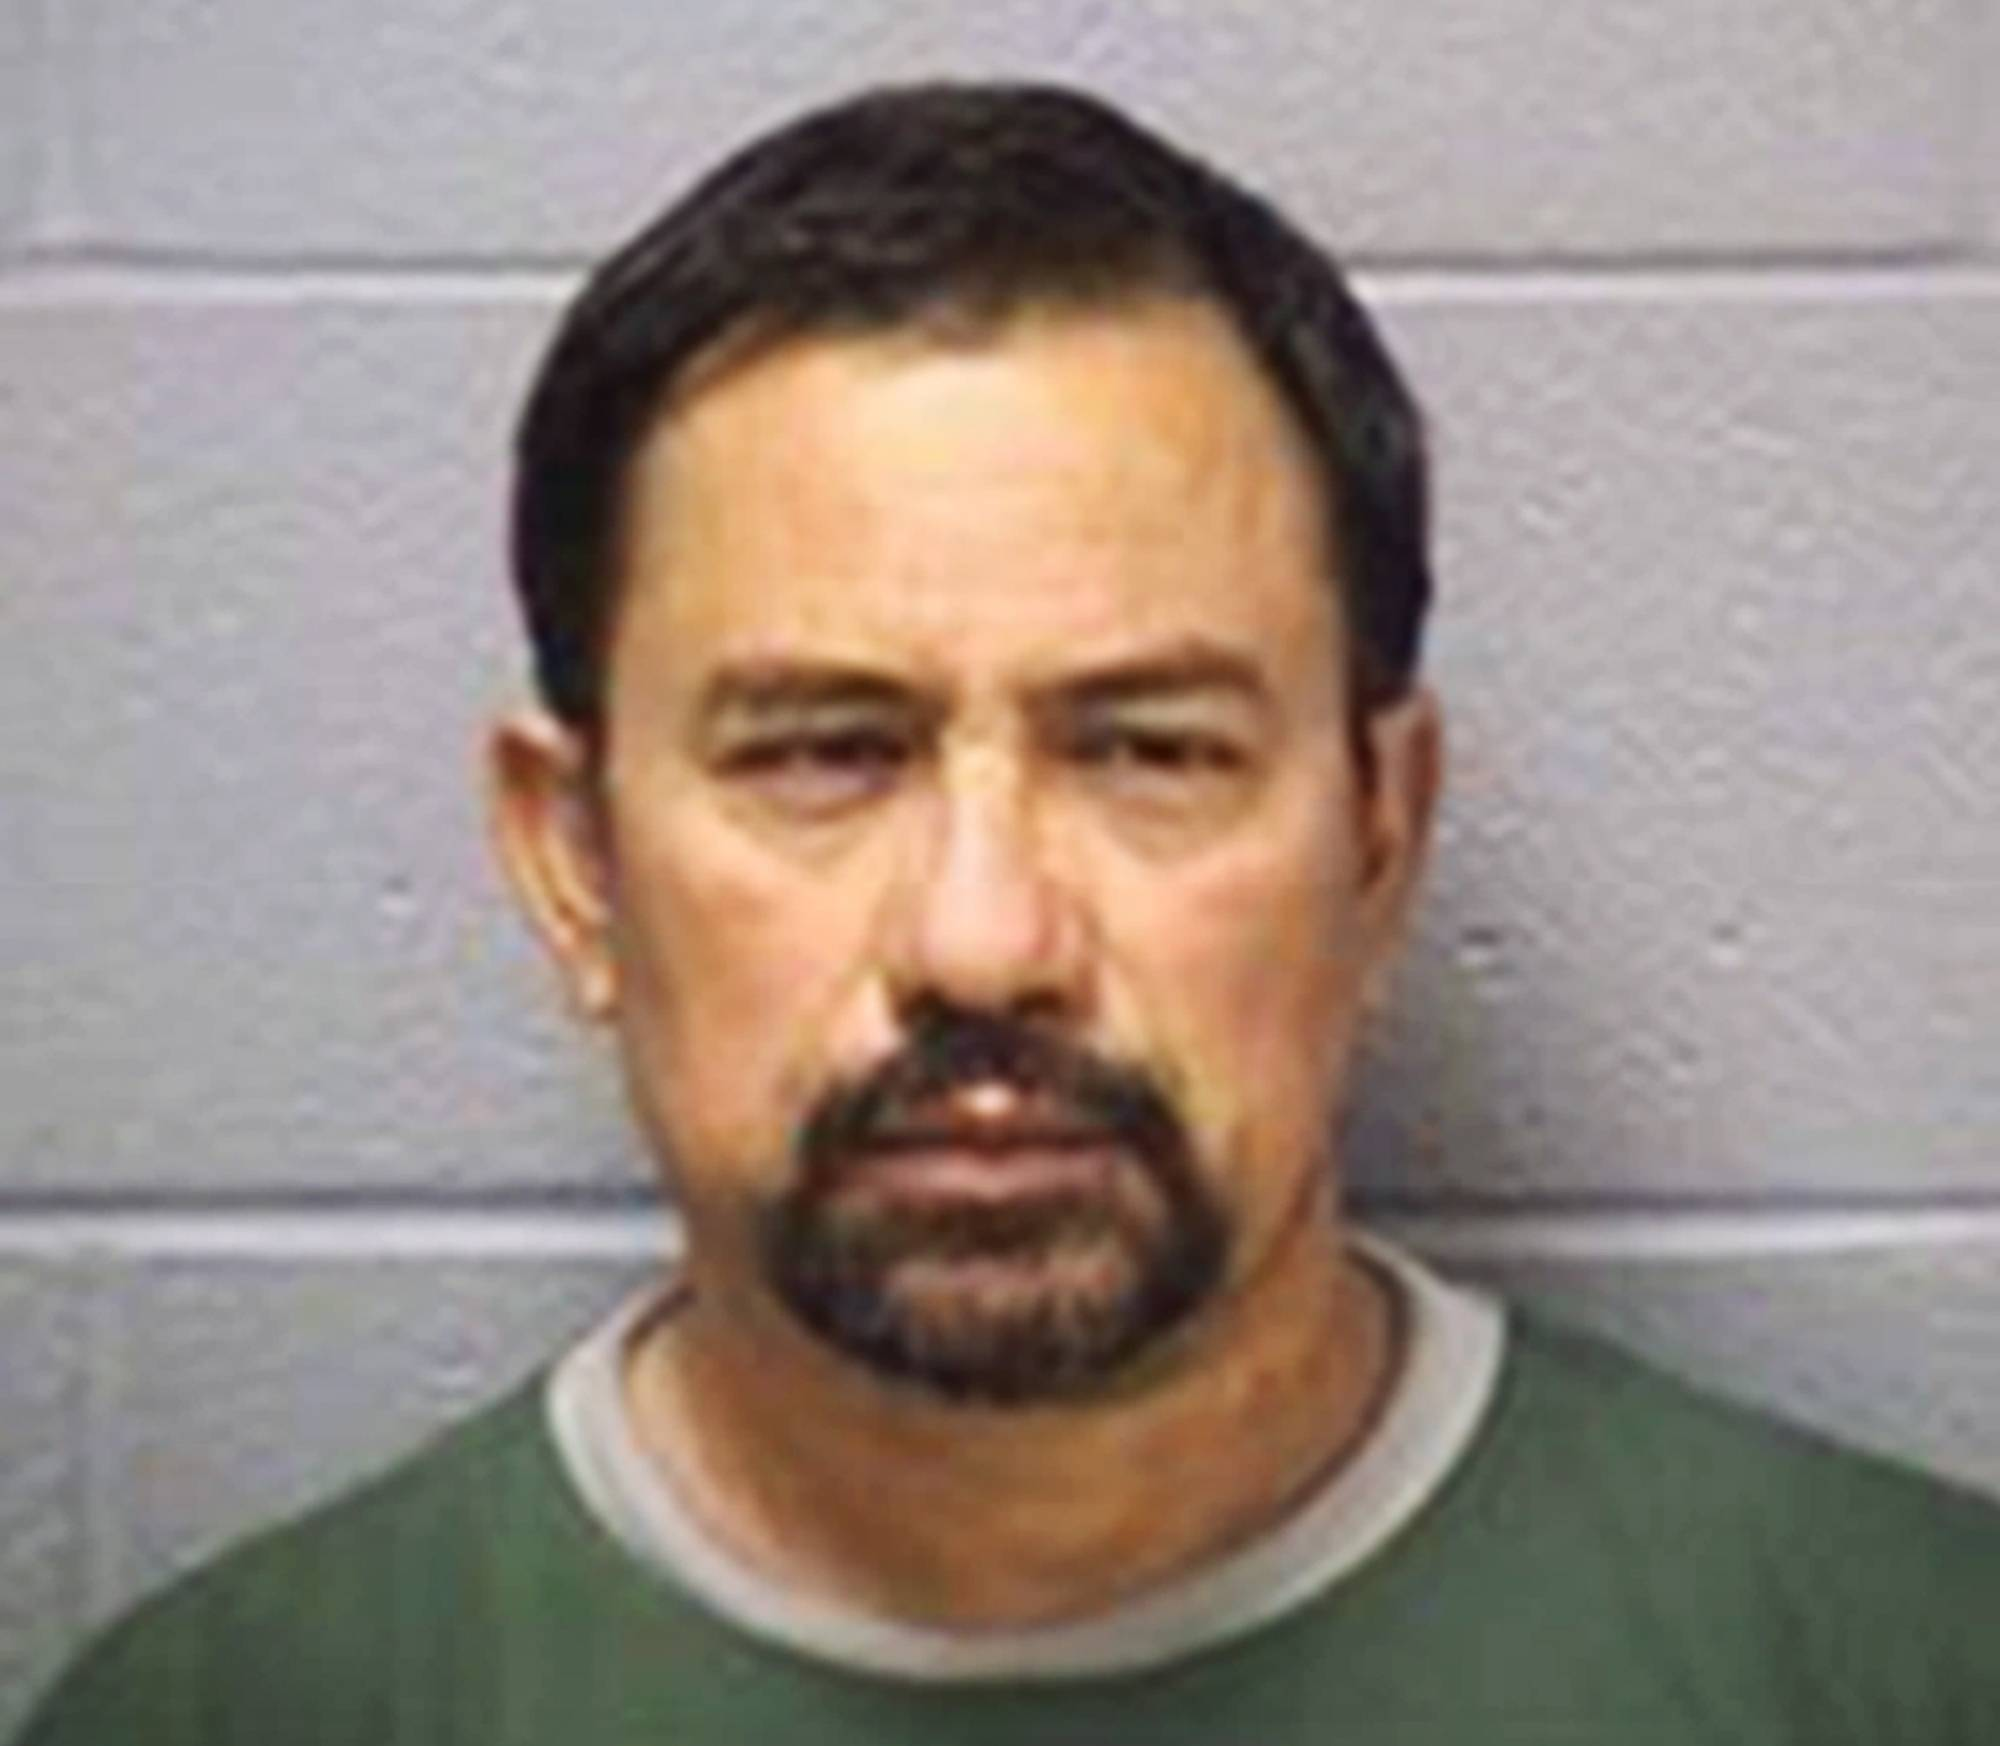 This undated photo provided by the Will County Sheriff's Department in Joliet, Ill., shows semi-truck driver Francisco Espinal Quiroz, 51, of Leesburg, Ind., who was involved in a crash Monday, July 21, 2014, on Interstate 55 that killed four people near Channahon, southwest of Chicago. Quiroz was charged with failure to reduce speed to prevent an accident and willfully making false entries in his logbook.